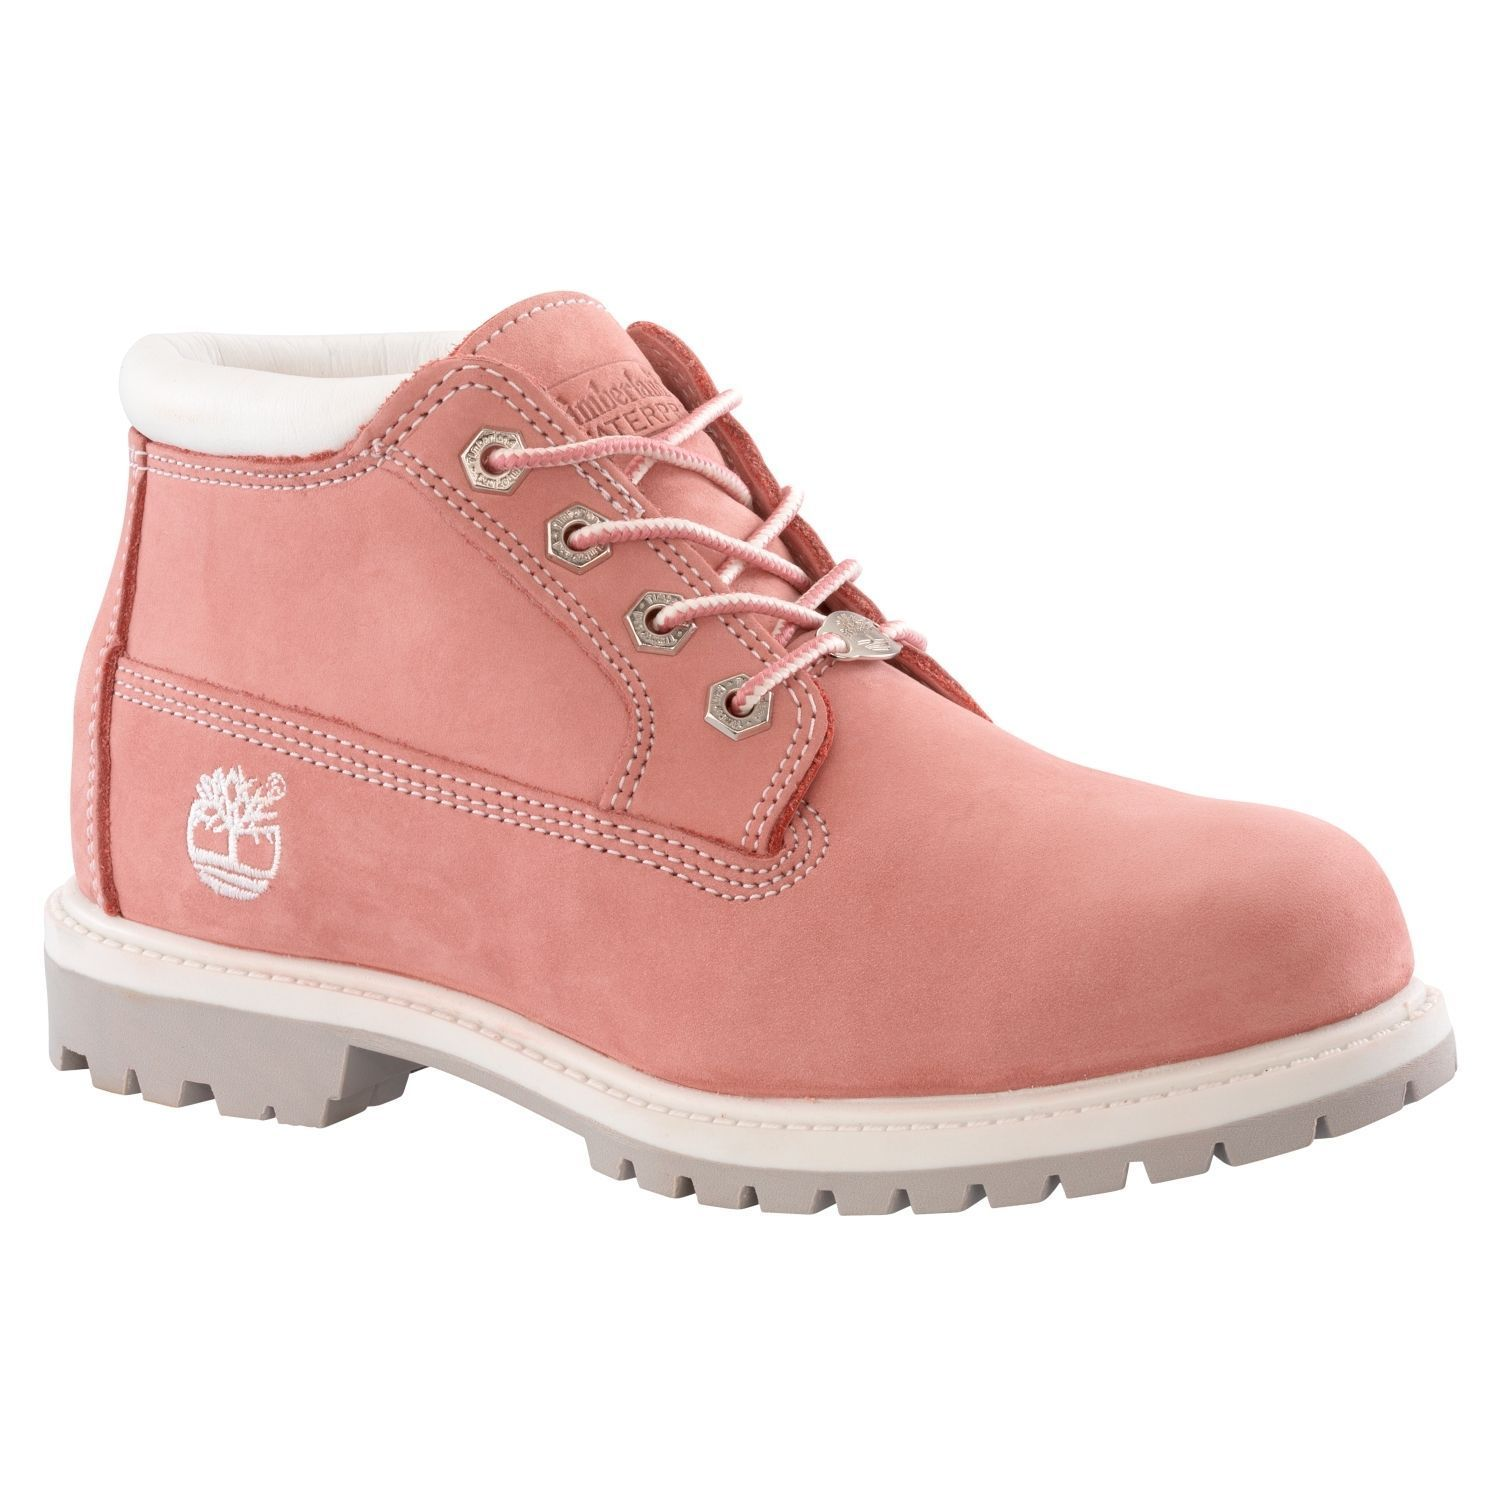 0ab6ccde5b2c Timberland Women S Waterproof Nellie Chukka Double Sole 23308 Pink All Sizes